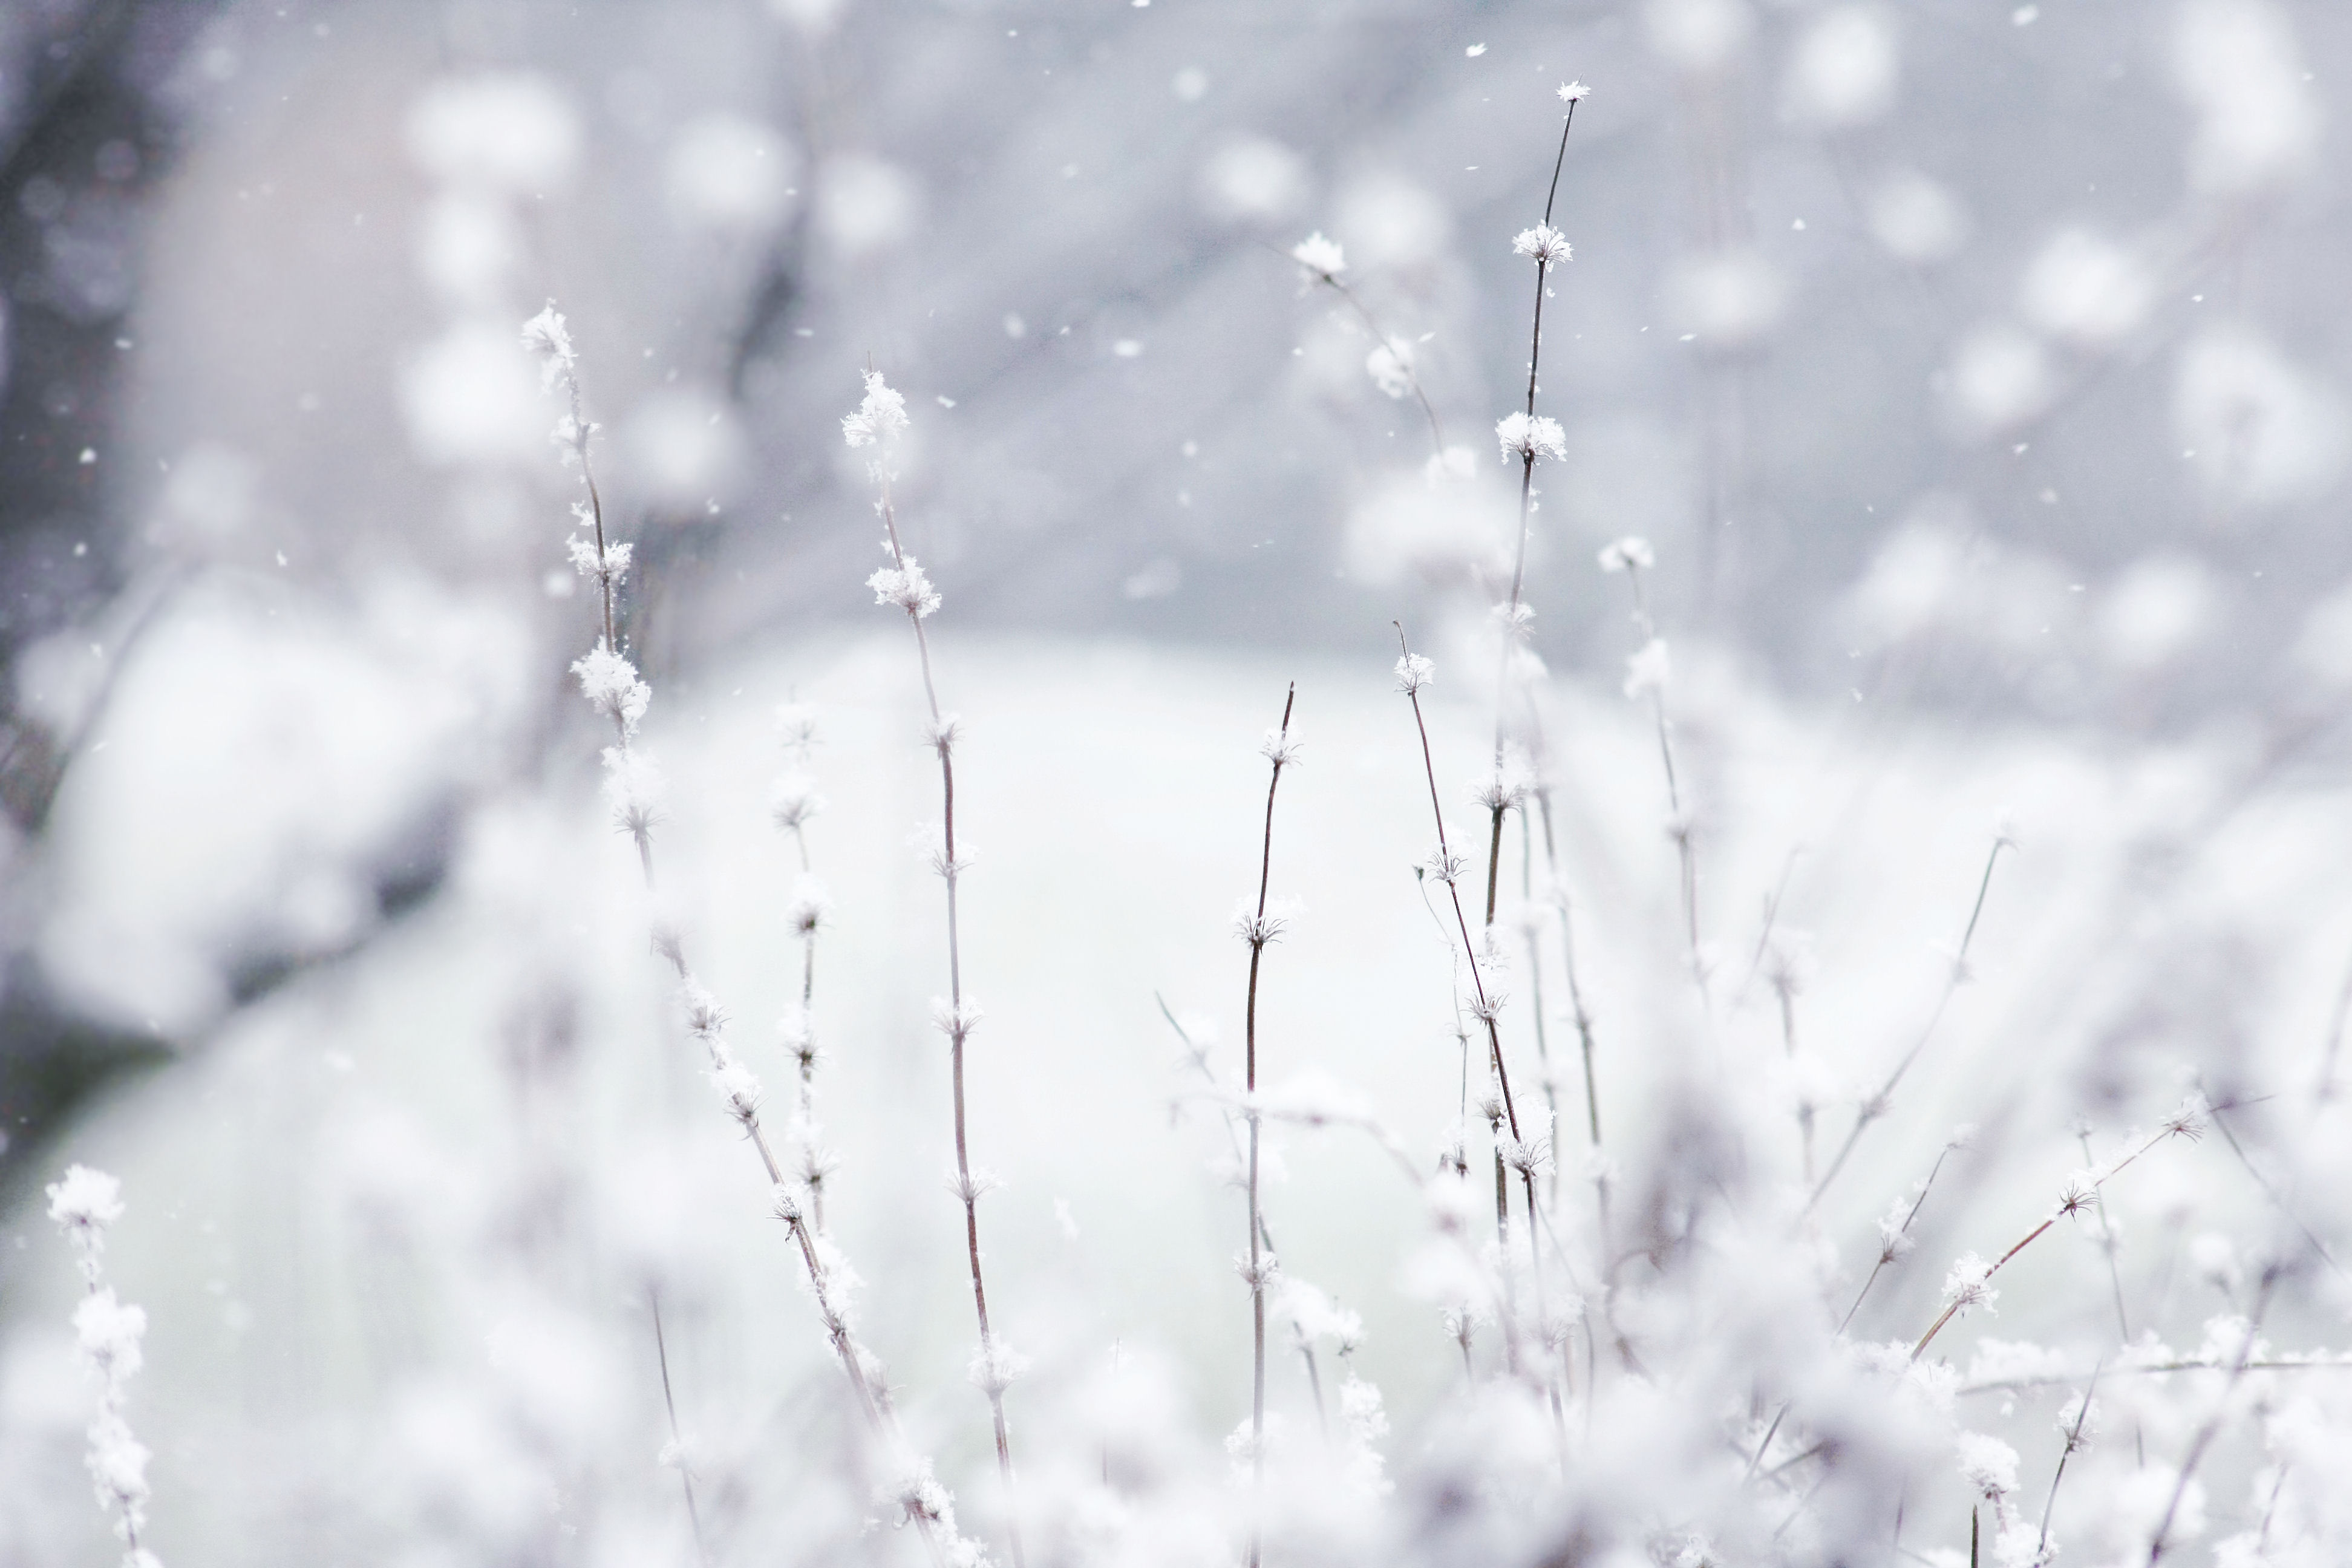 Winter Backgrounds You Can Download Free